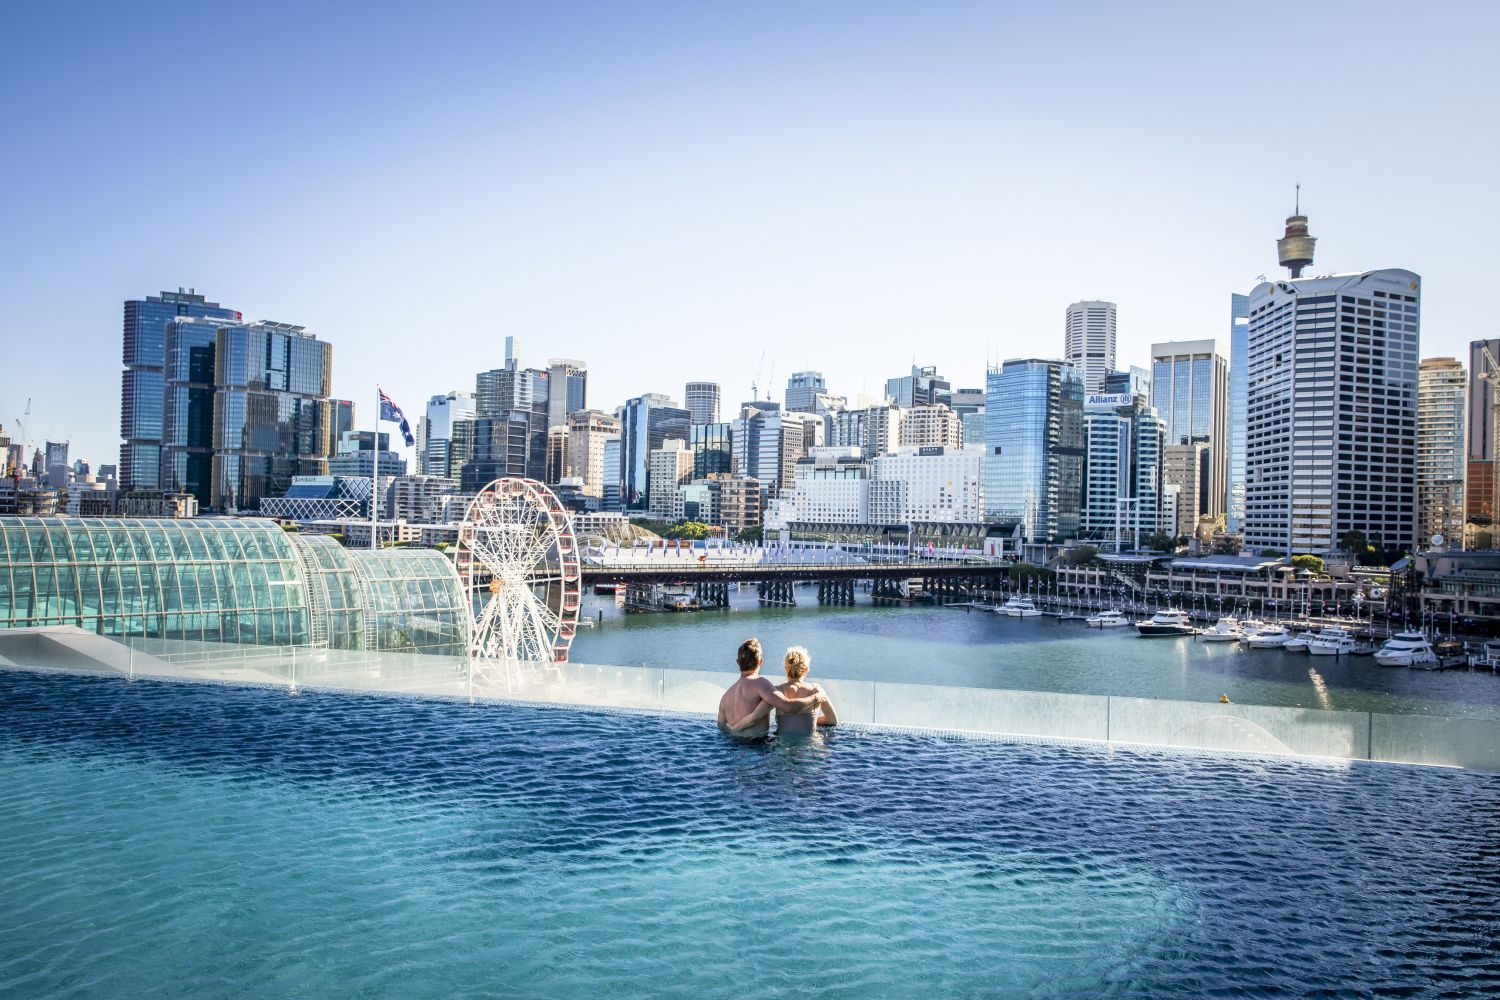 Couple enjoying Sofitel Sydney's rooftop pool with views across Darling Harbour